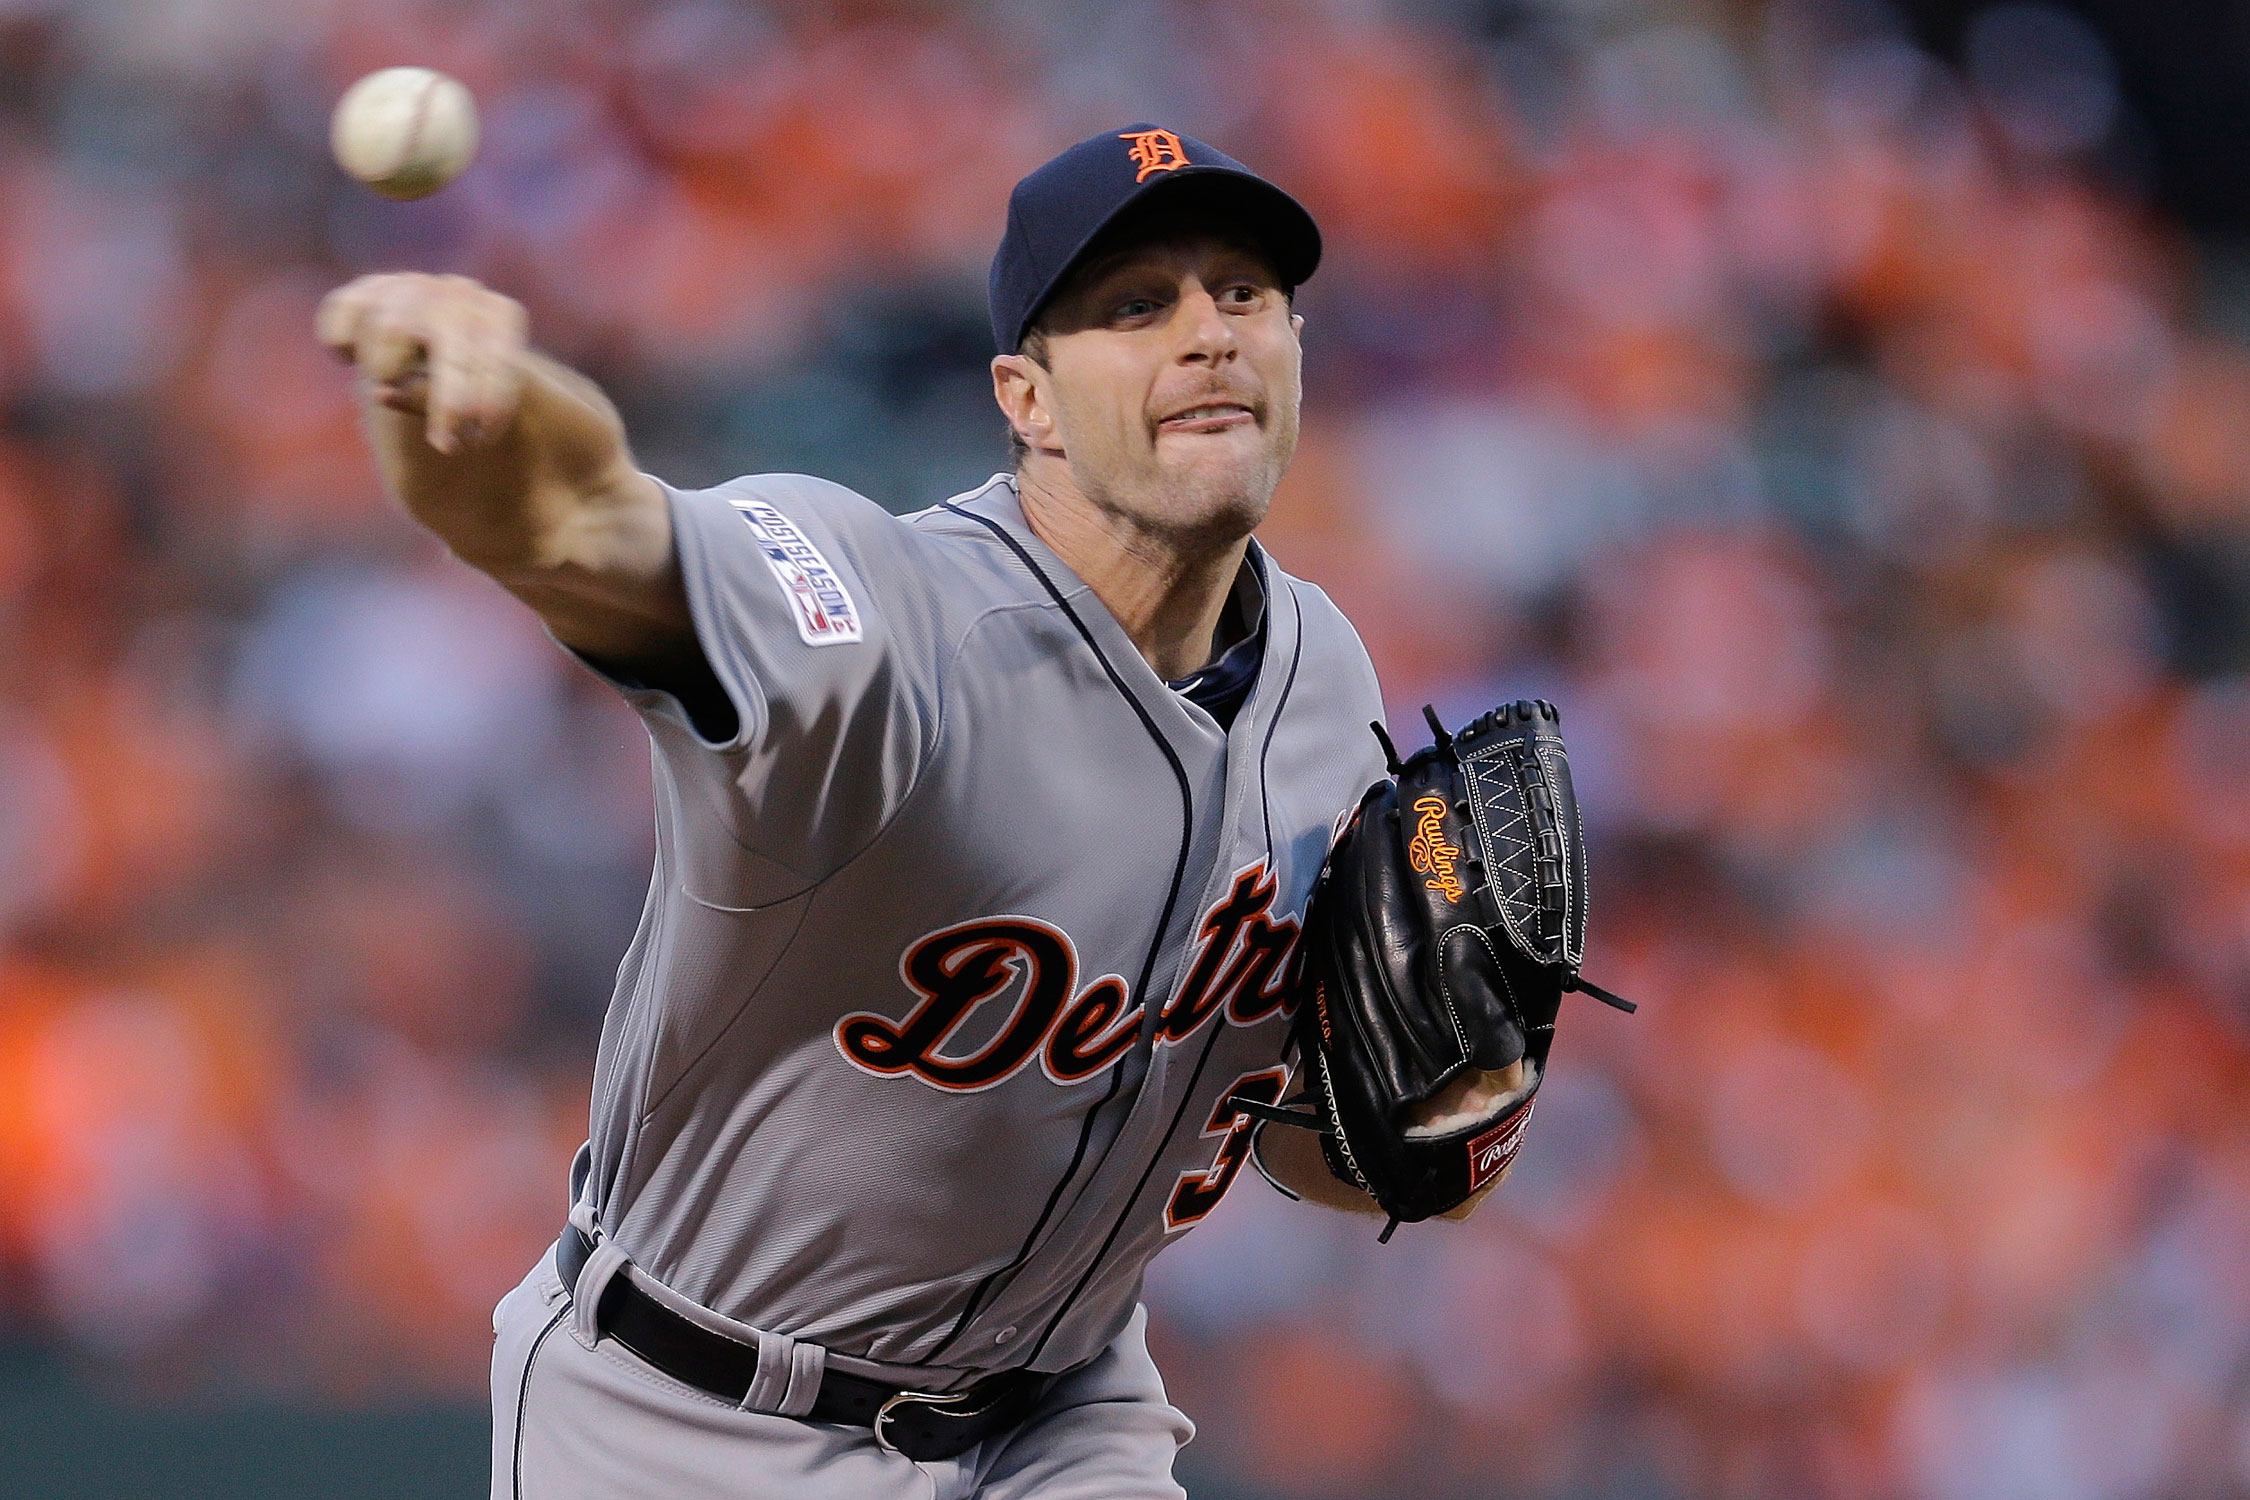 The Nats signed Max Scherzer! Now what?